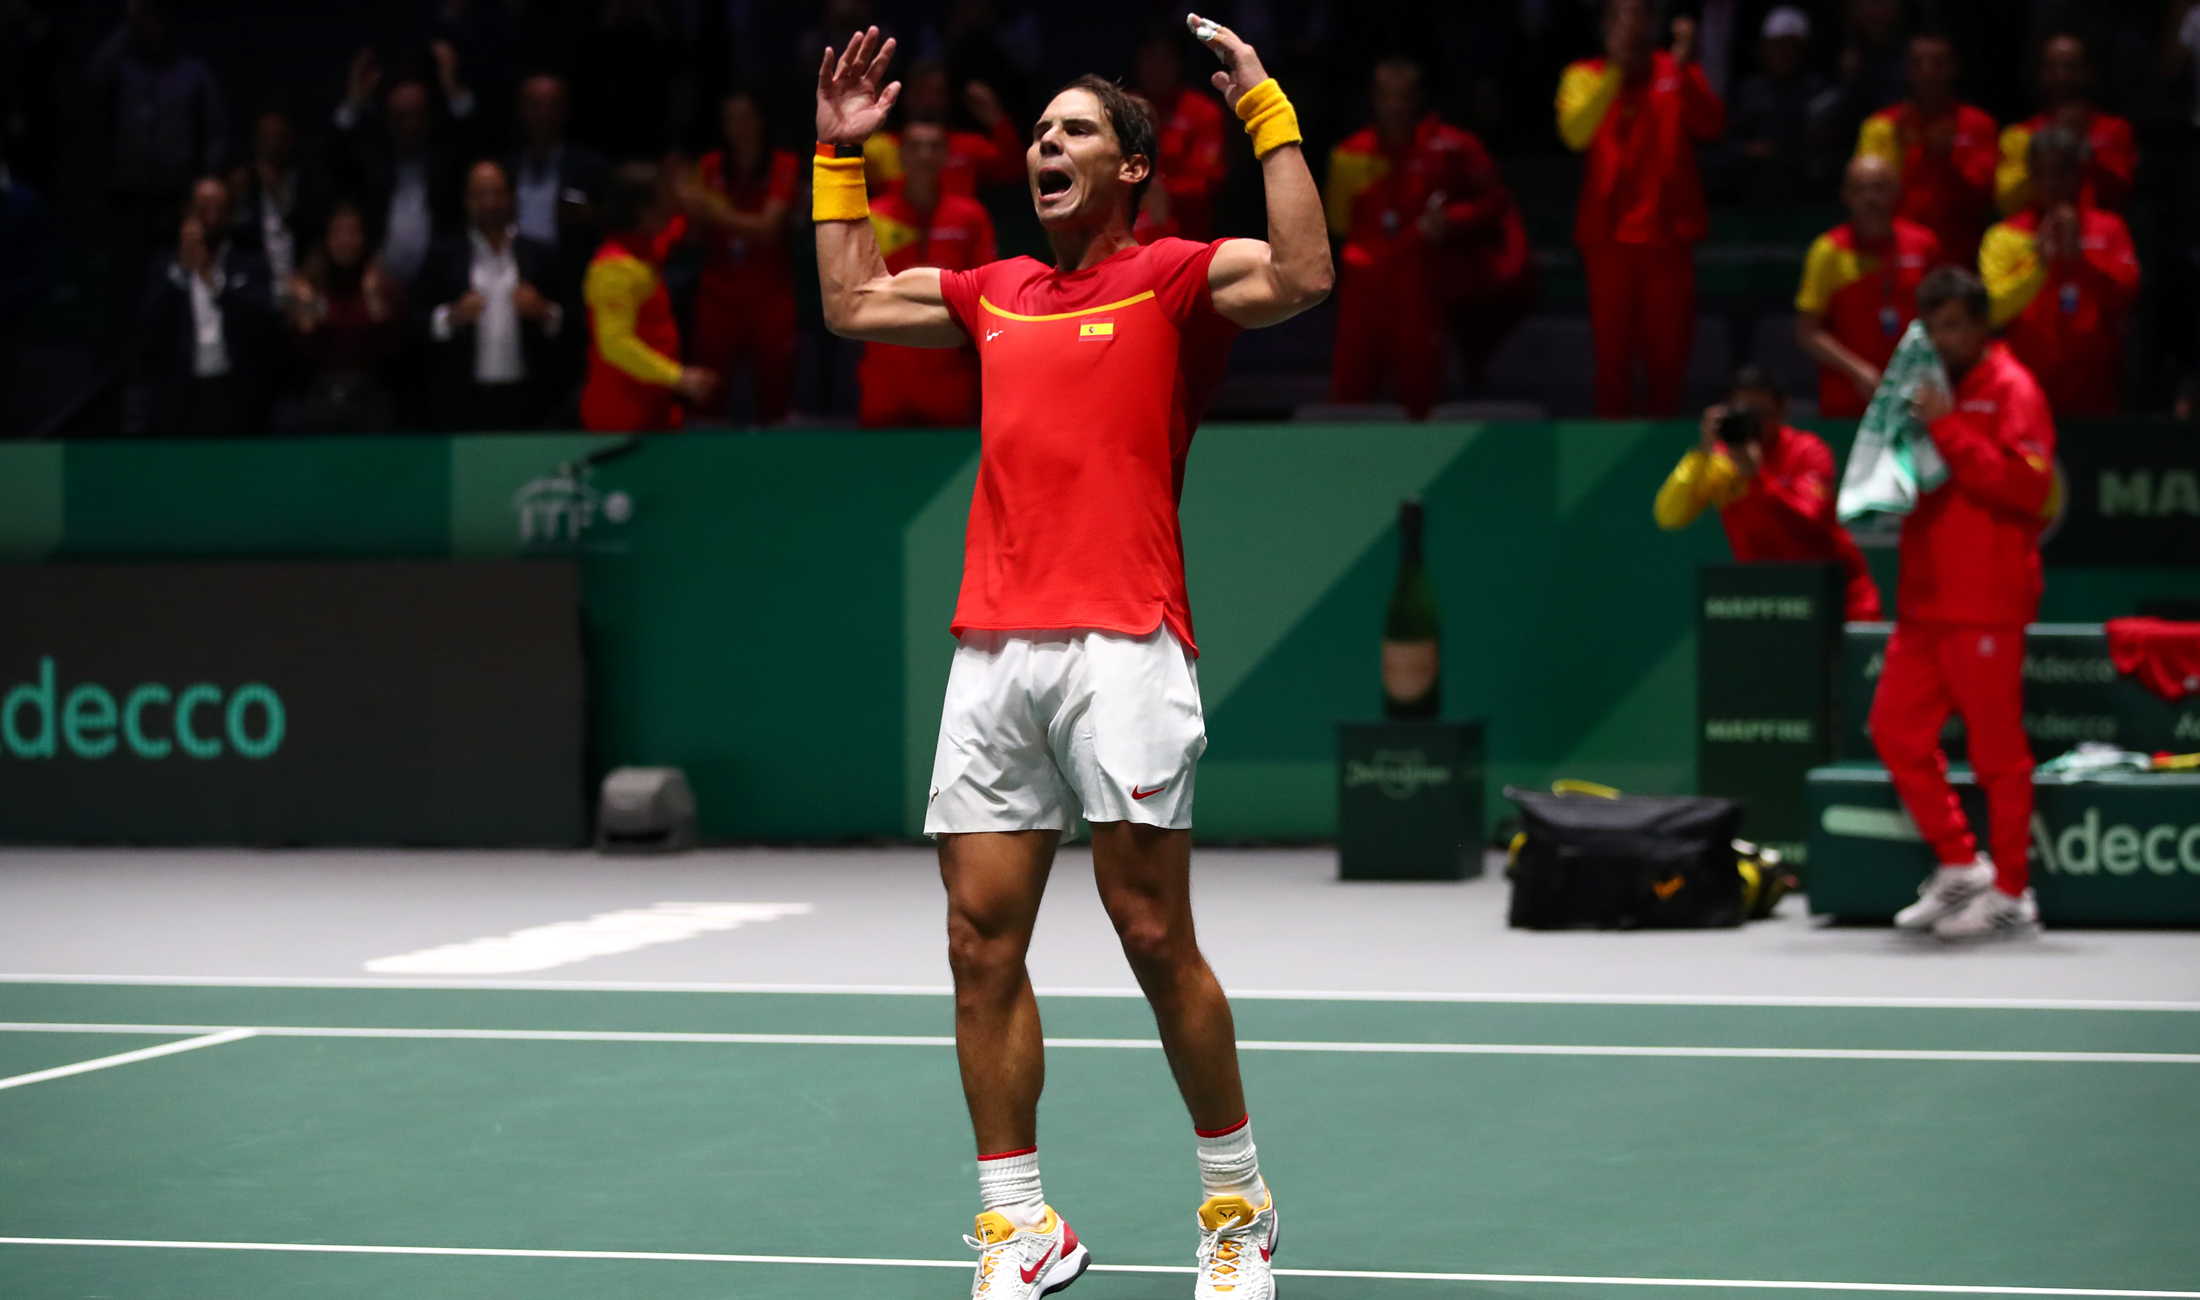 Spain overcame Russia in their Davis Cup Finals opener as Rafael Nadal claimed a singles win.